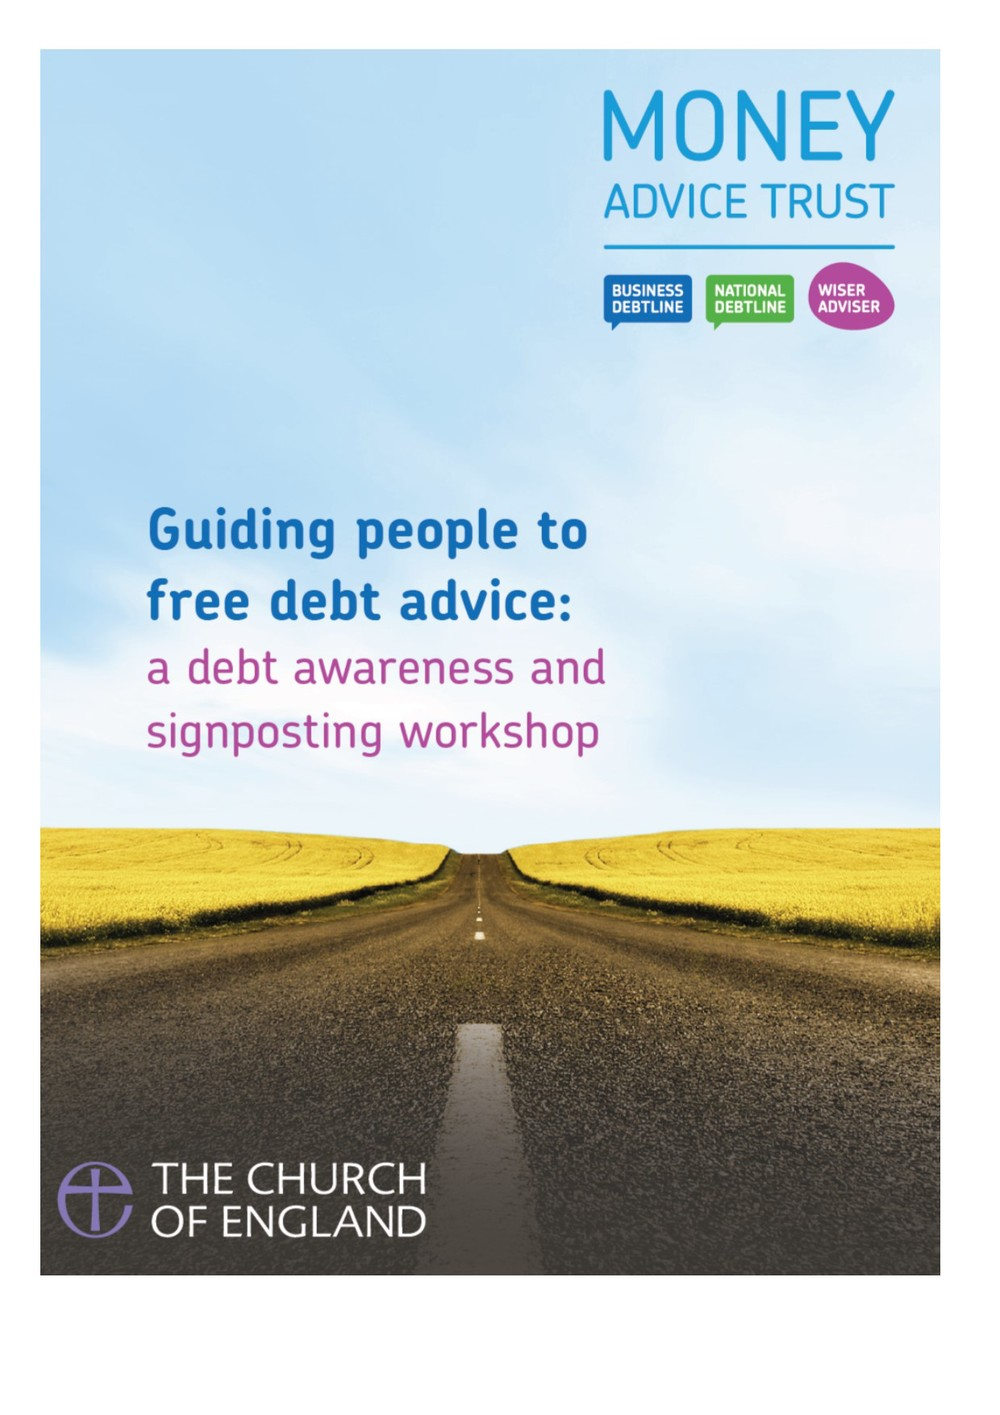 """Helping people to get out of debt, and freeing them from the anxiety and exploitation that often goes with being in debt, is part of the Church's commitment to human flourishing. I welcome this new training resource to help local churches play a vital role in encouraging people to seek assistance earlier and to make use of the many free debt advice services that are available.""    Justin Welby, Archbishop of Canterbury"